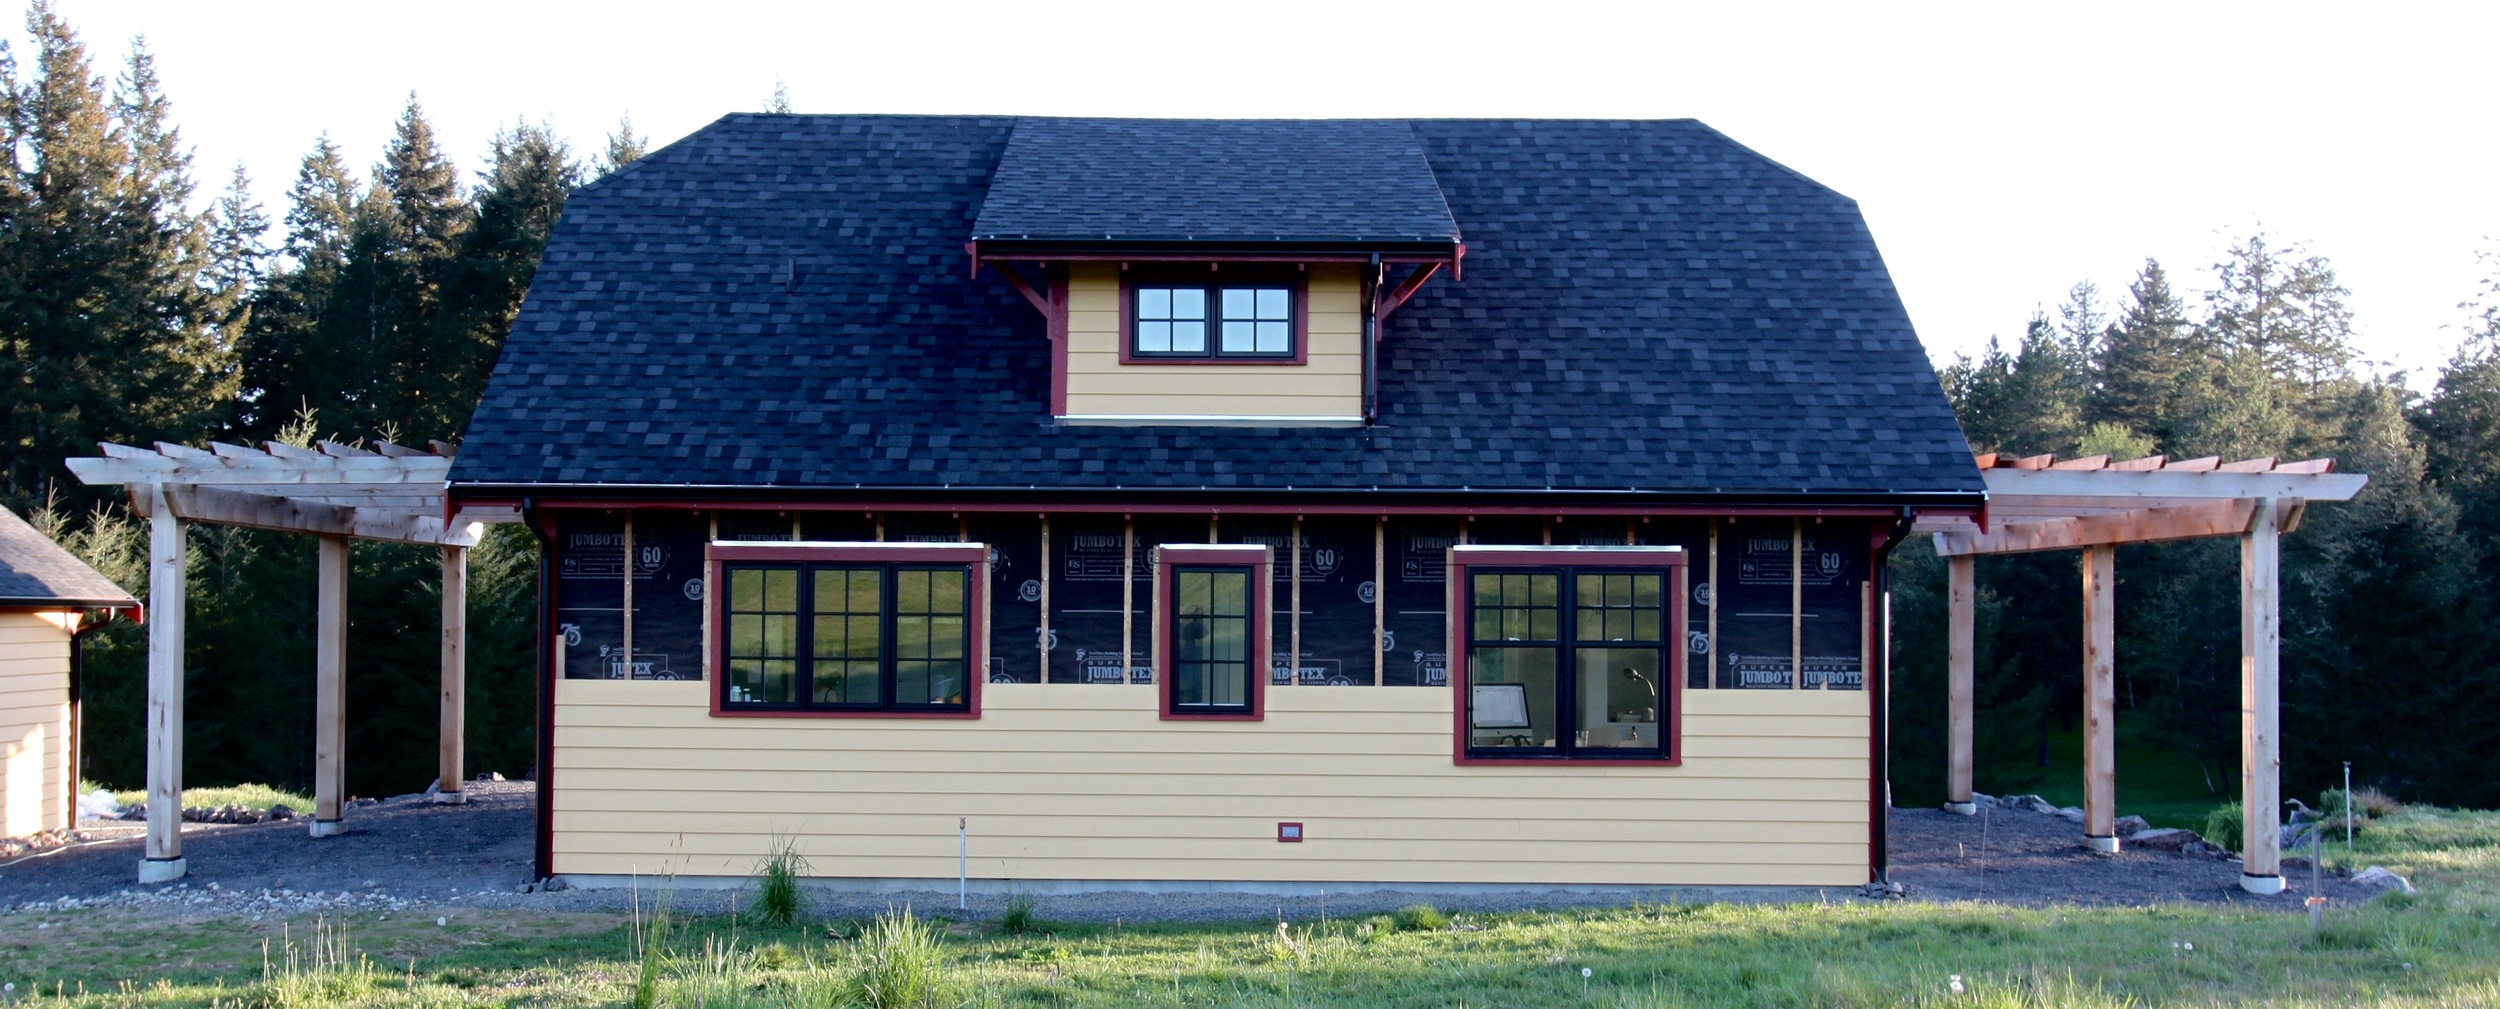 Siding goes up fast!